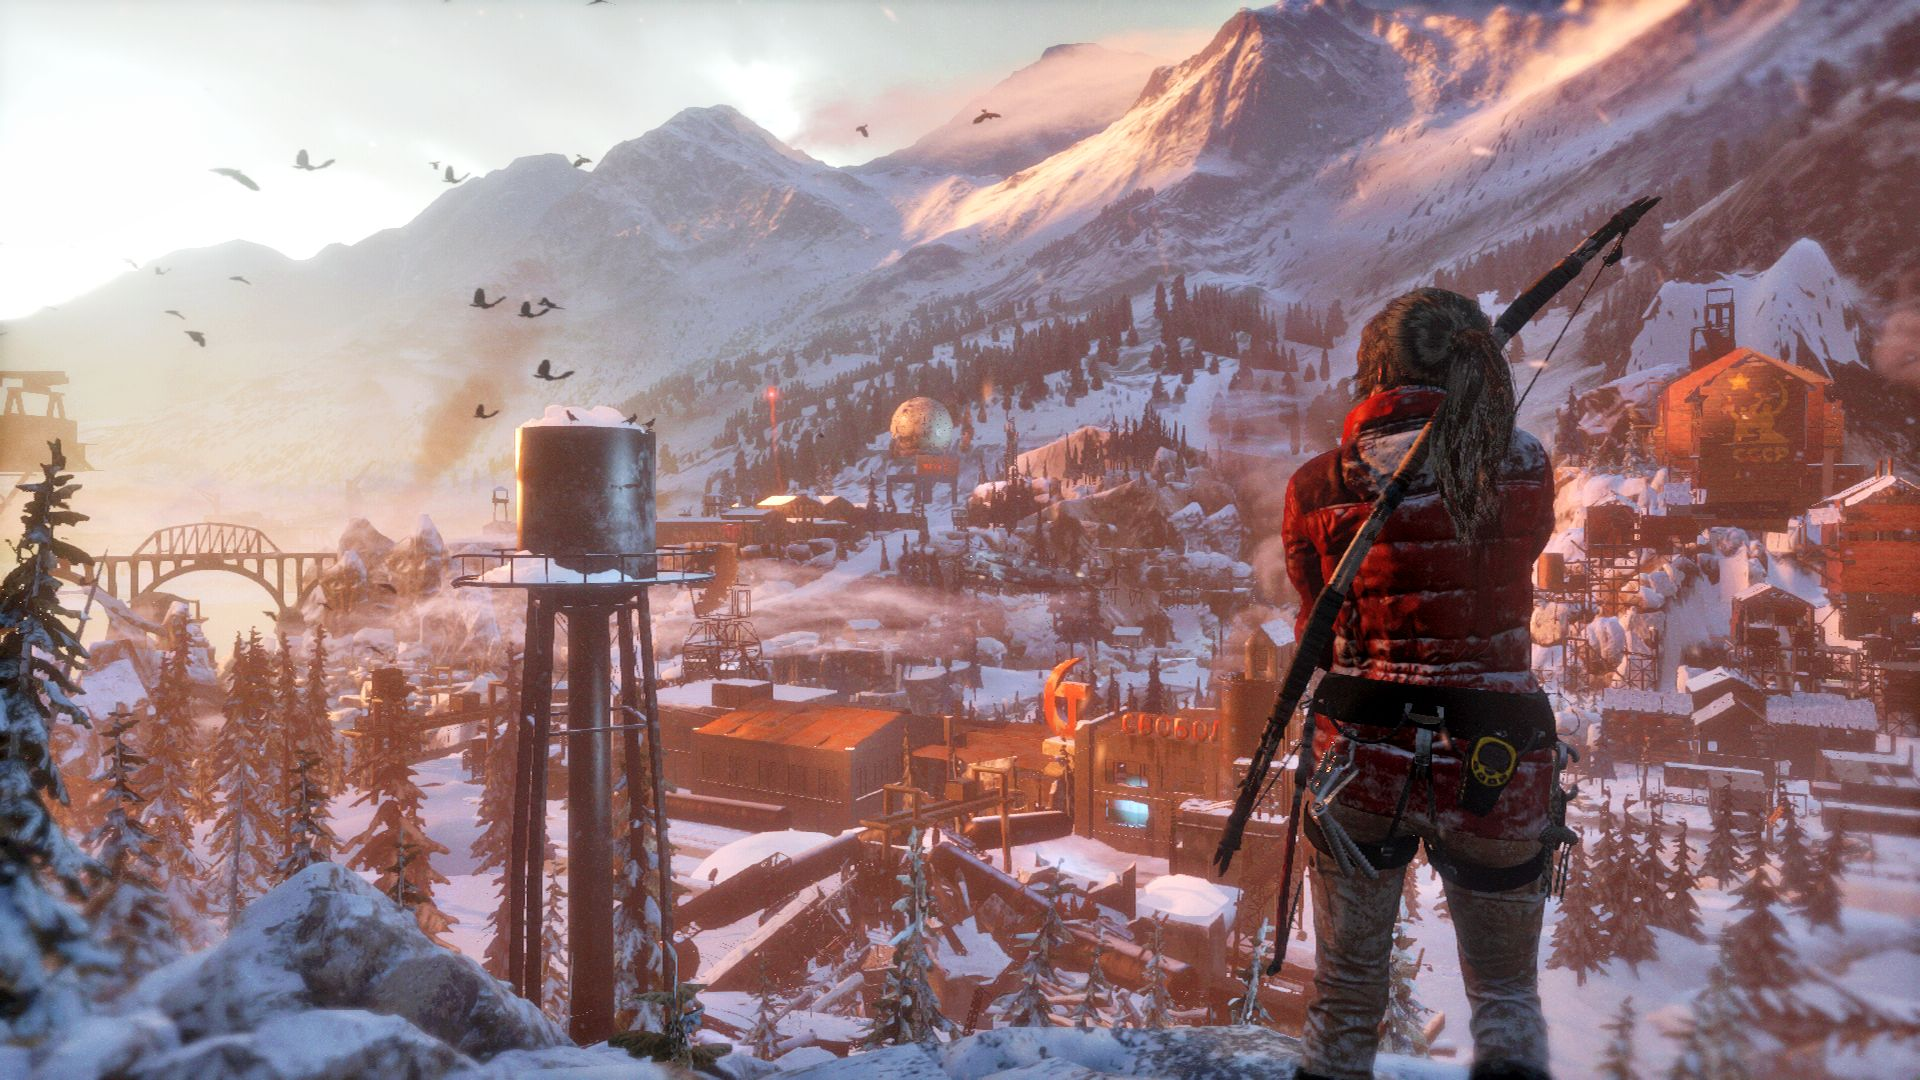 New High-Res Rise of the Tomb Raider Screenshots Published